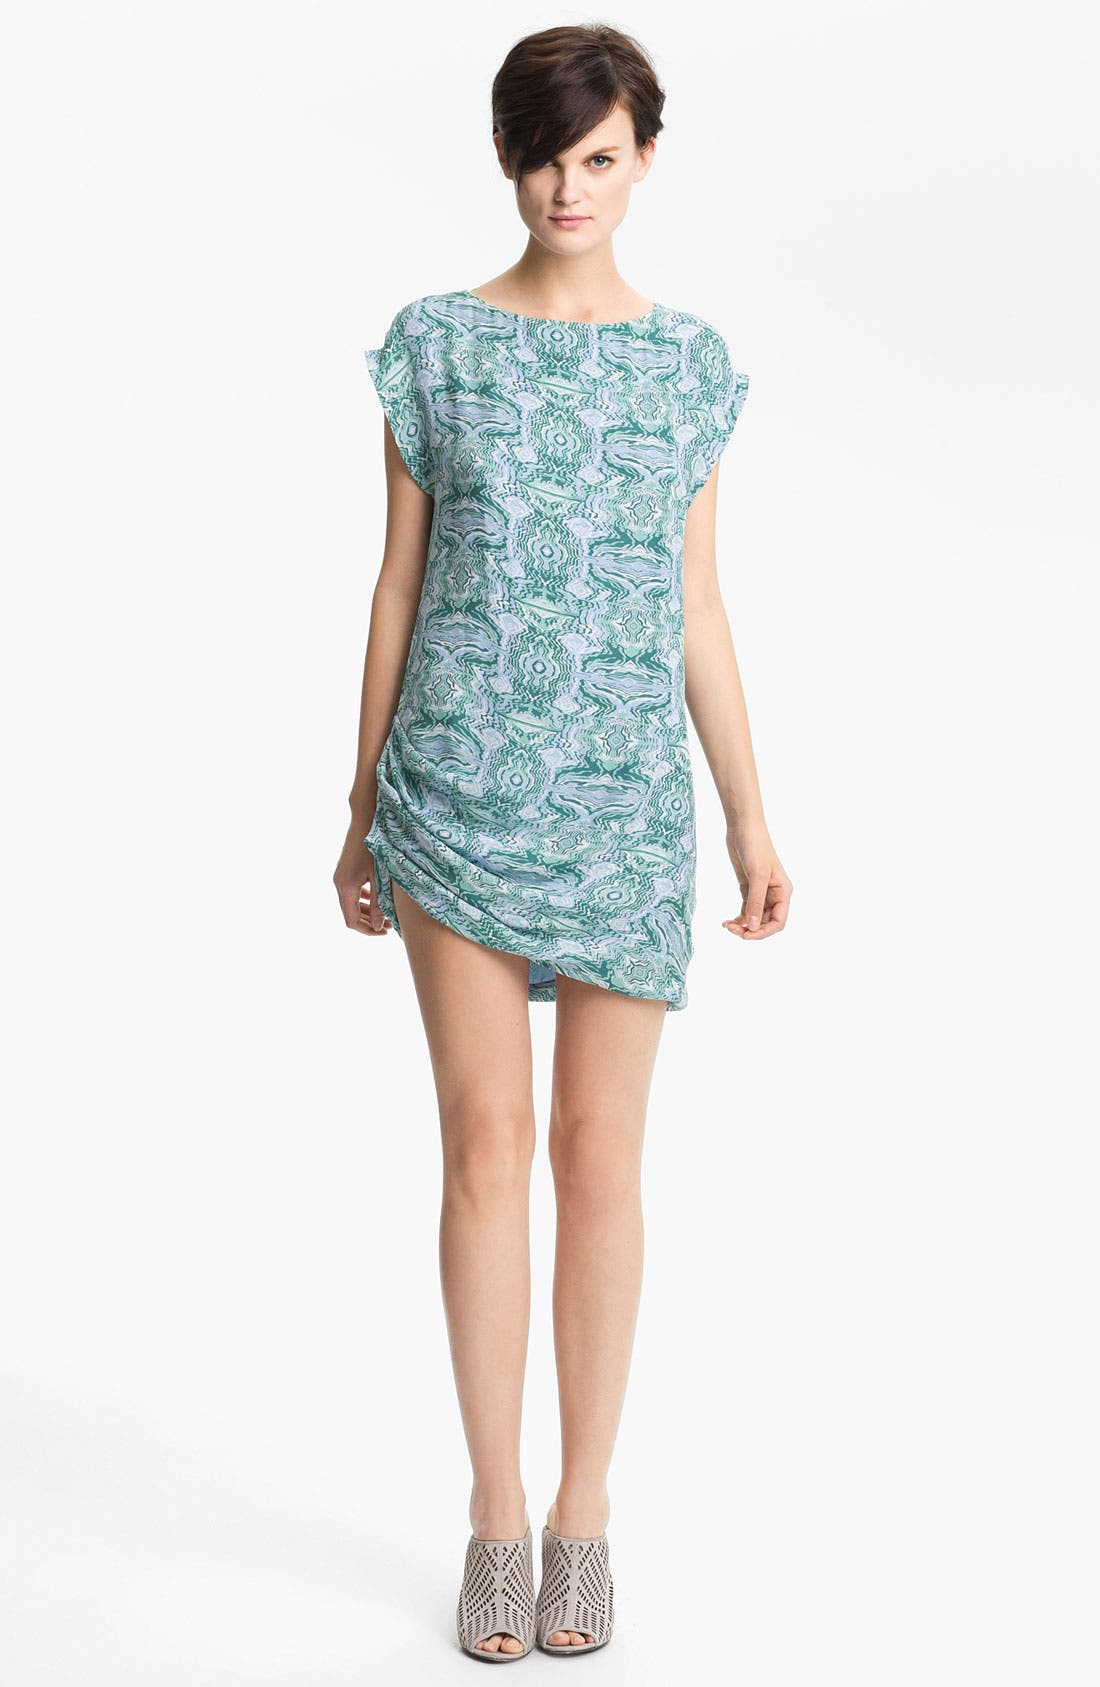 Main Image - Kelly Wearstler Print Dress